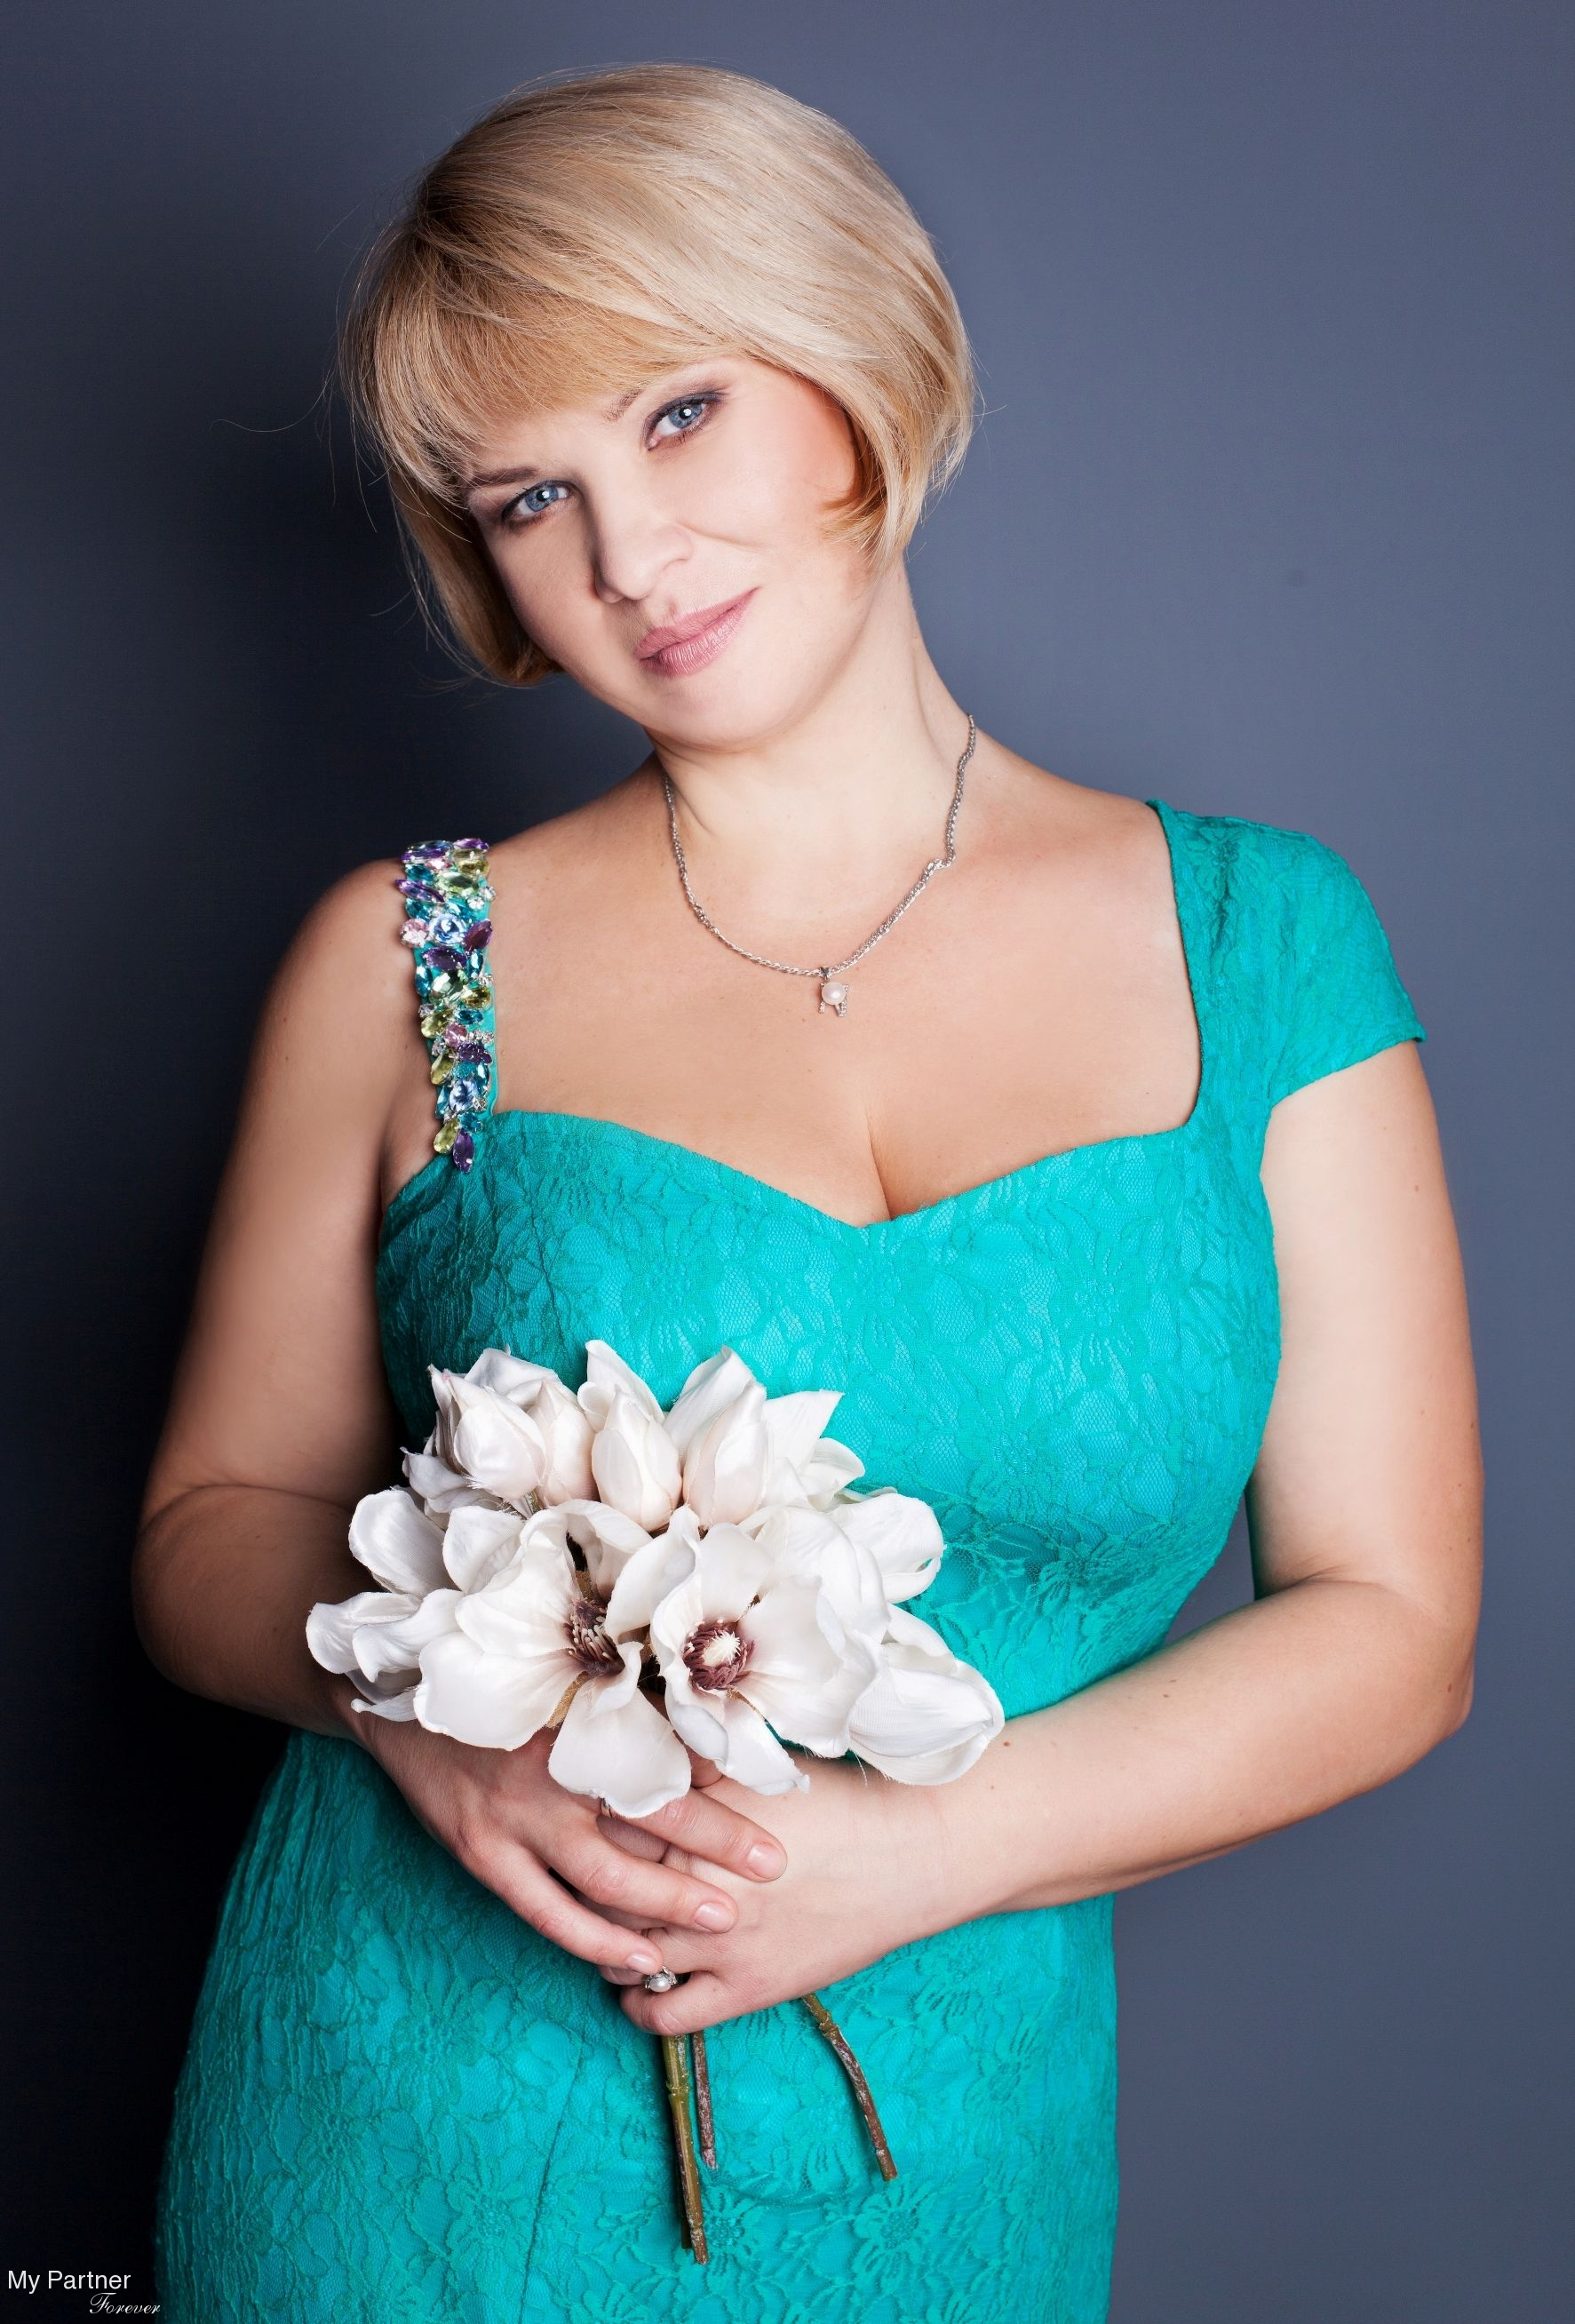 olga online dating Welcome to olga dating dear gentlemen, we are offering you an opportunity to create a relationship with ukrainian women.